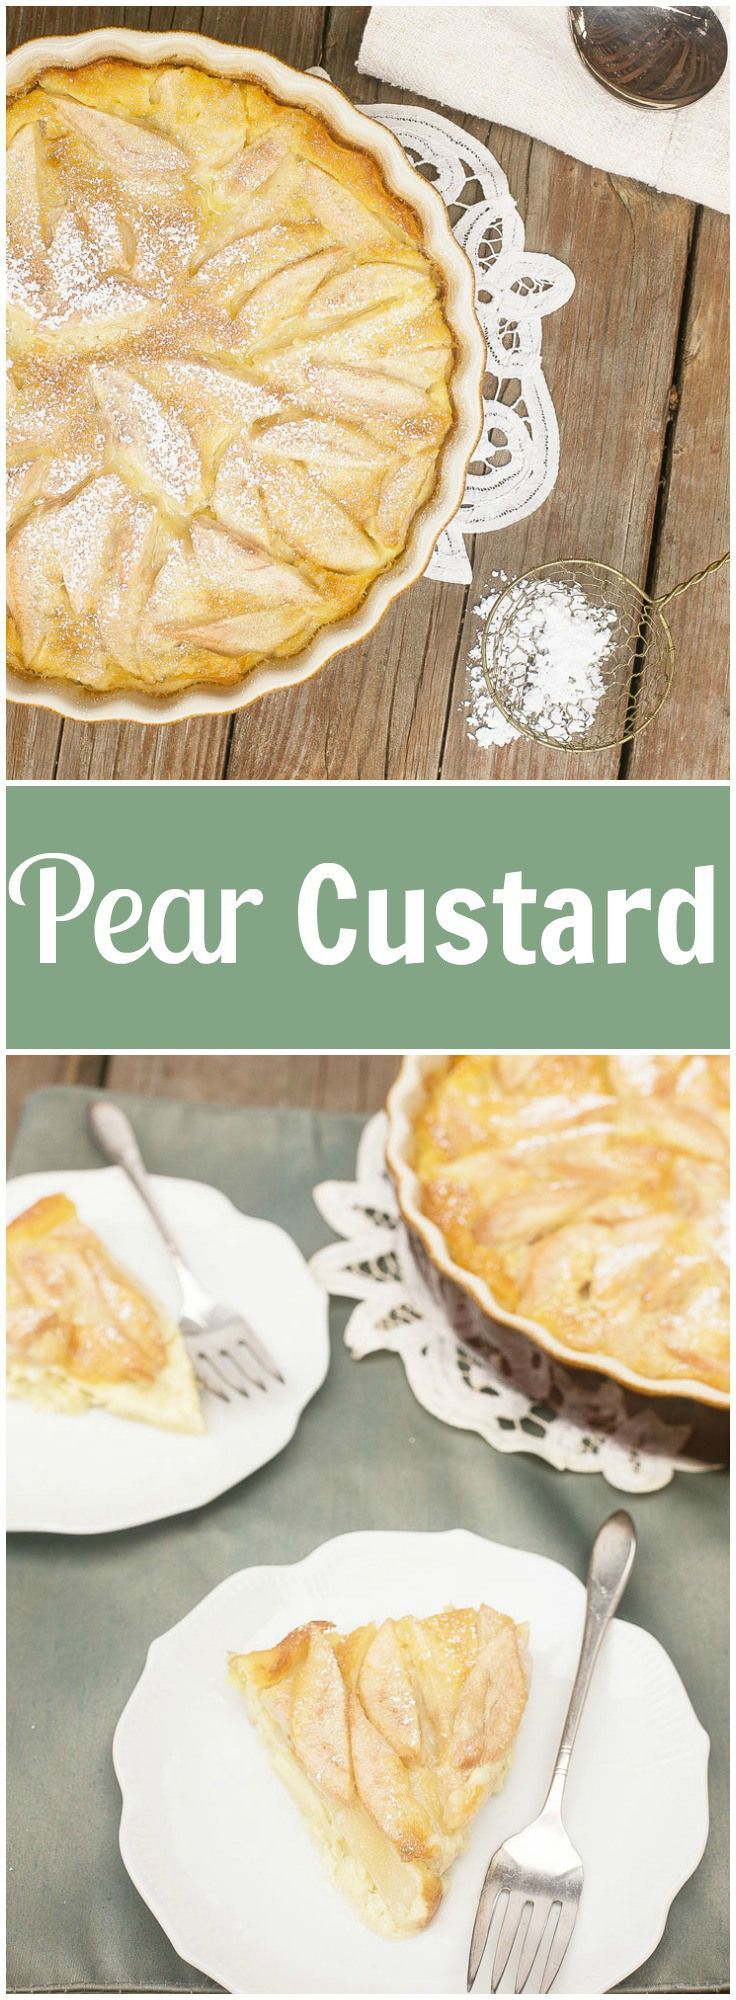 PEAR CUSTARD PIE - 4 pears of any variety cored, peeled and thinly sliced, ¼ C unsalted butter, 3 eggs, ¾ C milk, ¼ tsp kosher salt, ⅓ C granulated sugar, ⅓ C all purpose flour, 2 tsp pure vanilla extract, Powdered sugar for garnish, Cooking spray